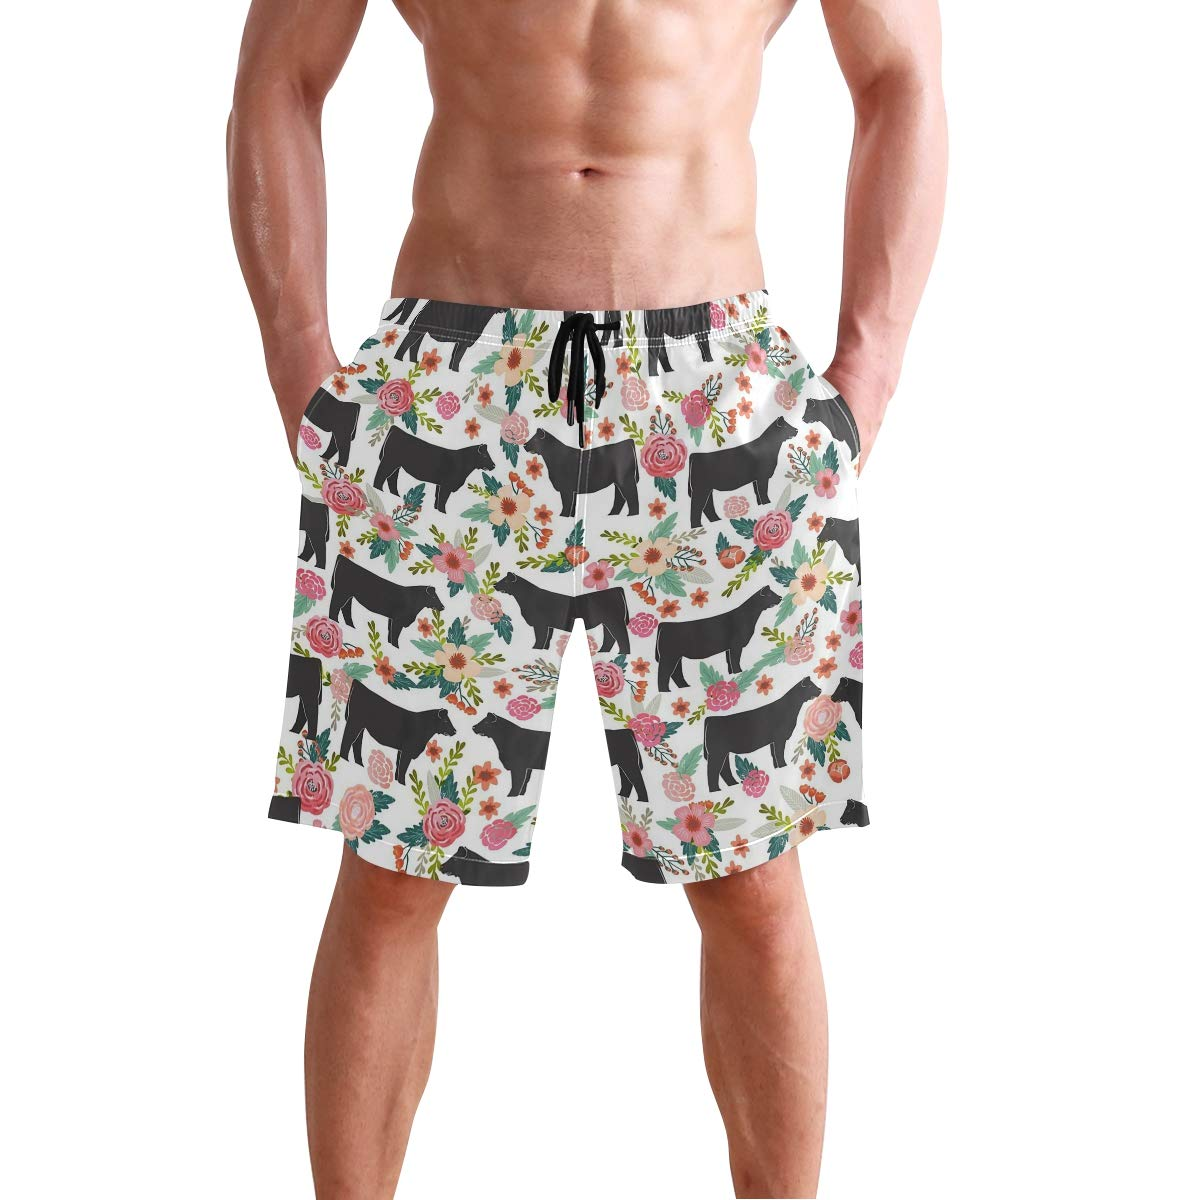 Cows Cattle Mens Quick Dry Swim Trunks Swimming Shorts with Mesh Liner